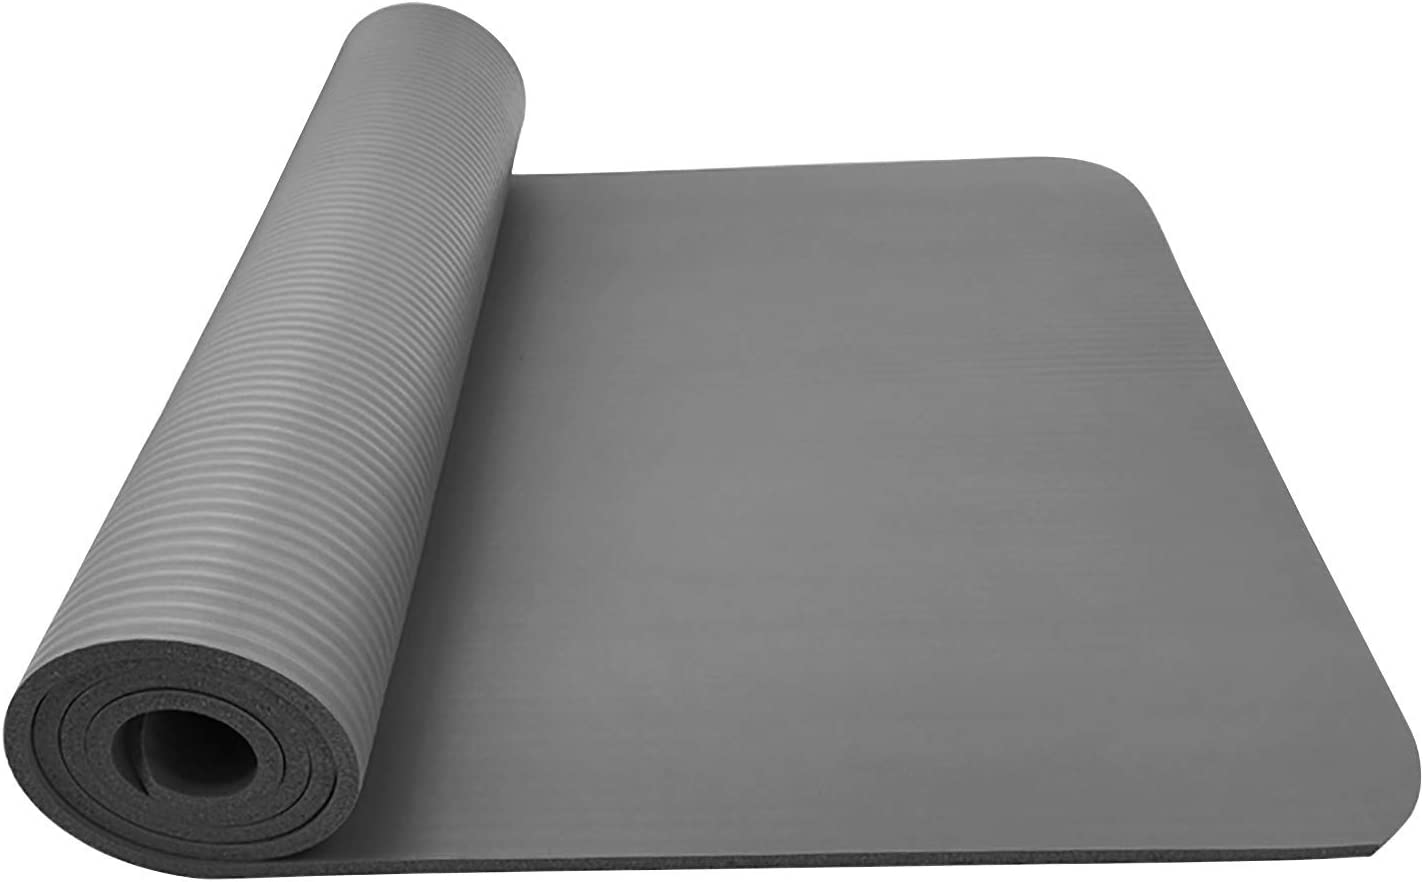 Challenge the lowest price of Japan Padasso Widened Ranking TOP1 Thickened Lengthened Household Yoga NBR Non-Slip